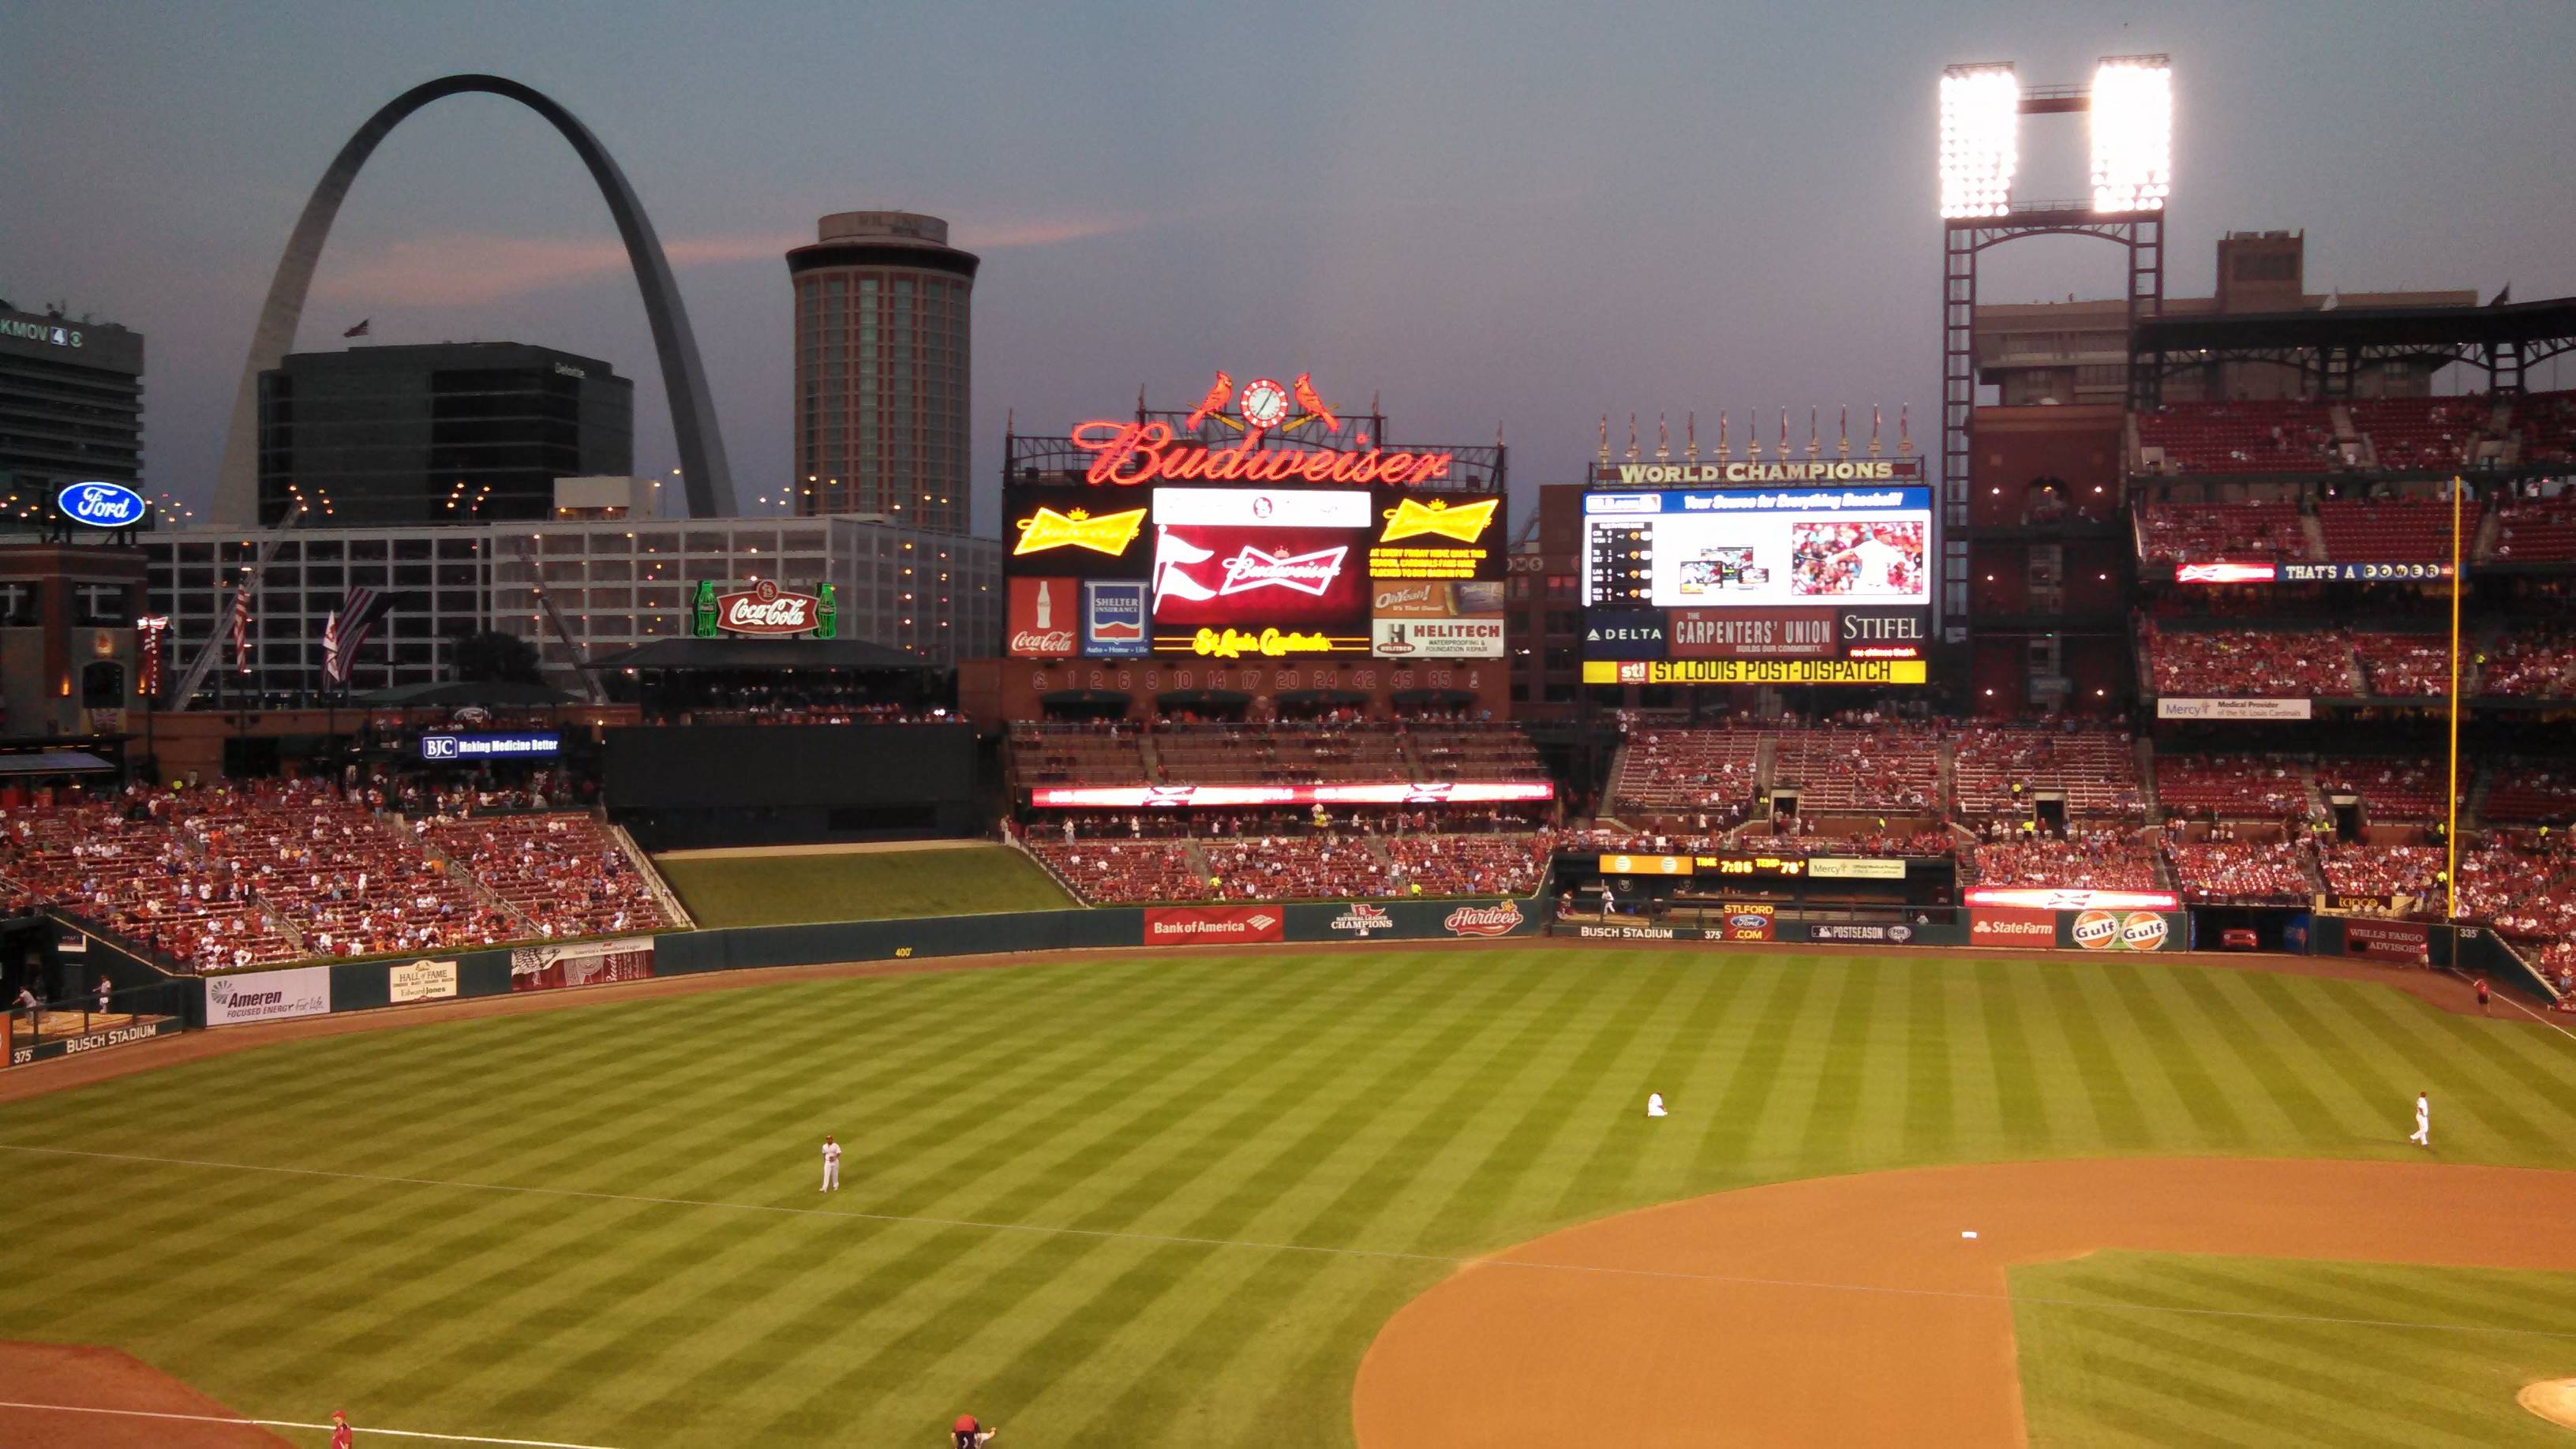 The Gateway Arch is the backdrop for a game at Busch Stadium in St. Louis.